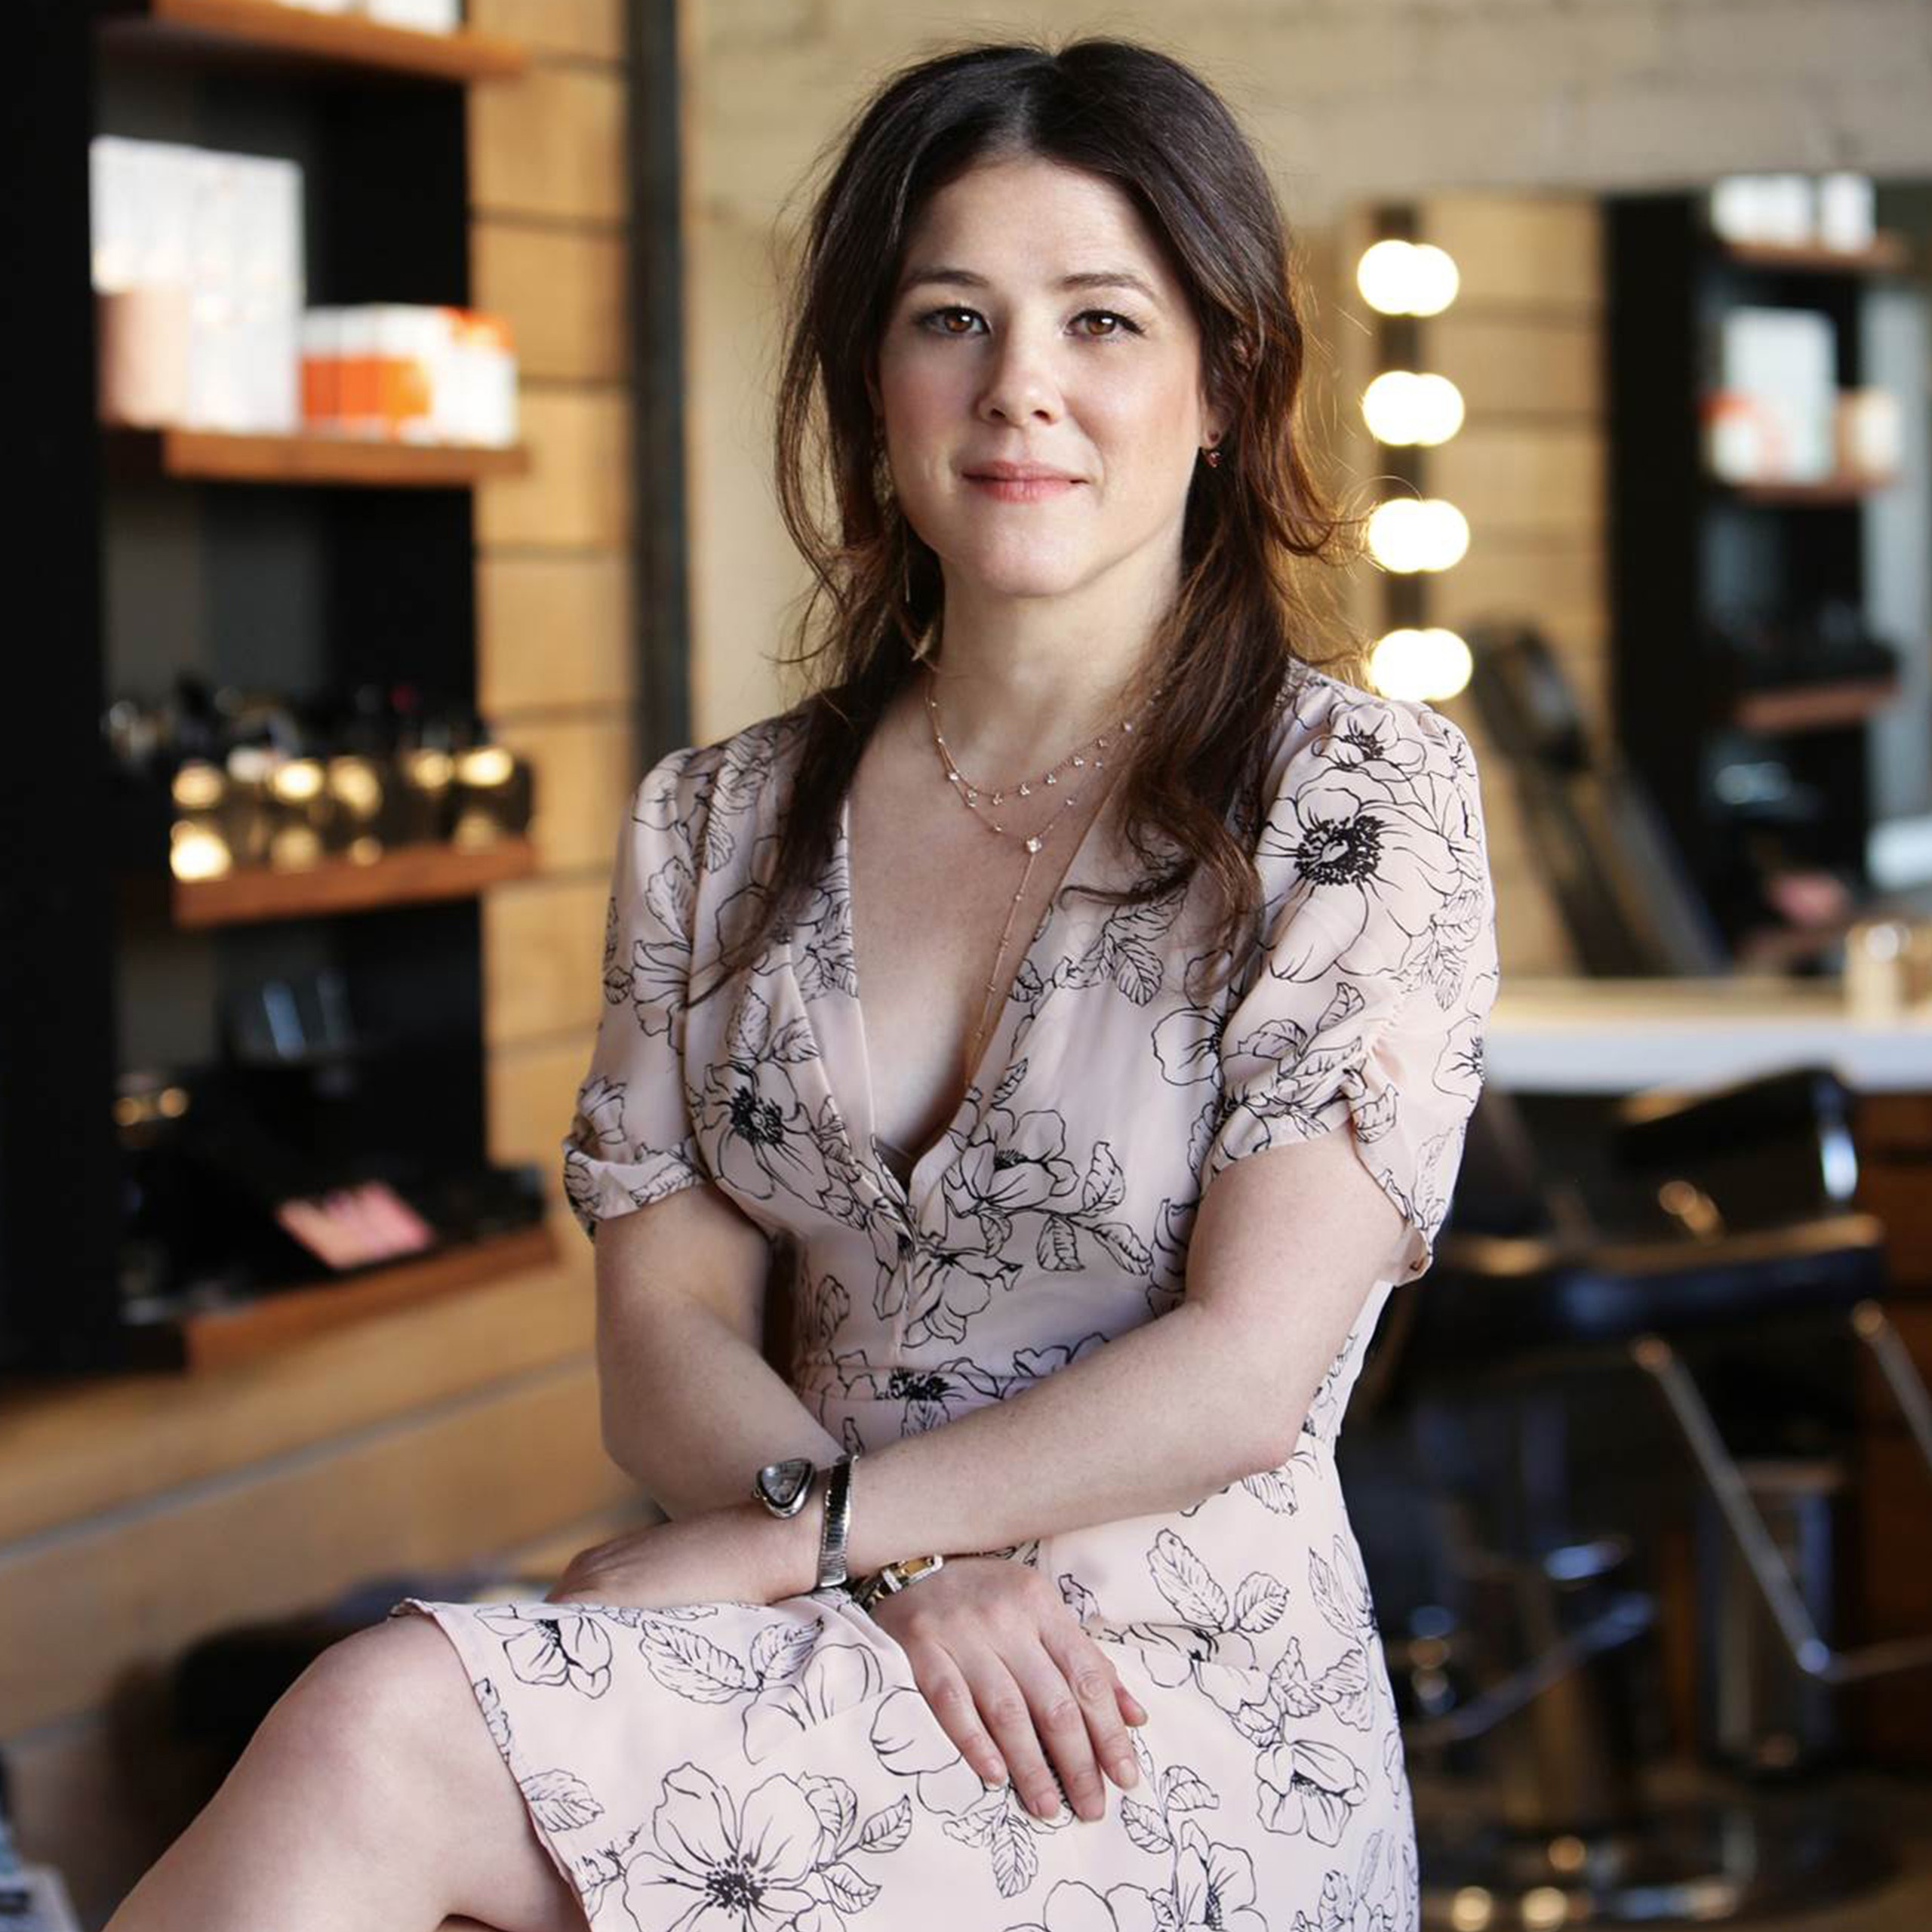 Celebrity hair colourist Tracey Cunningham to take centre stage